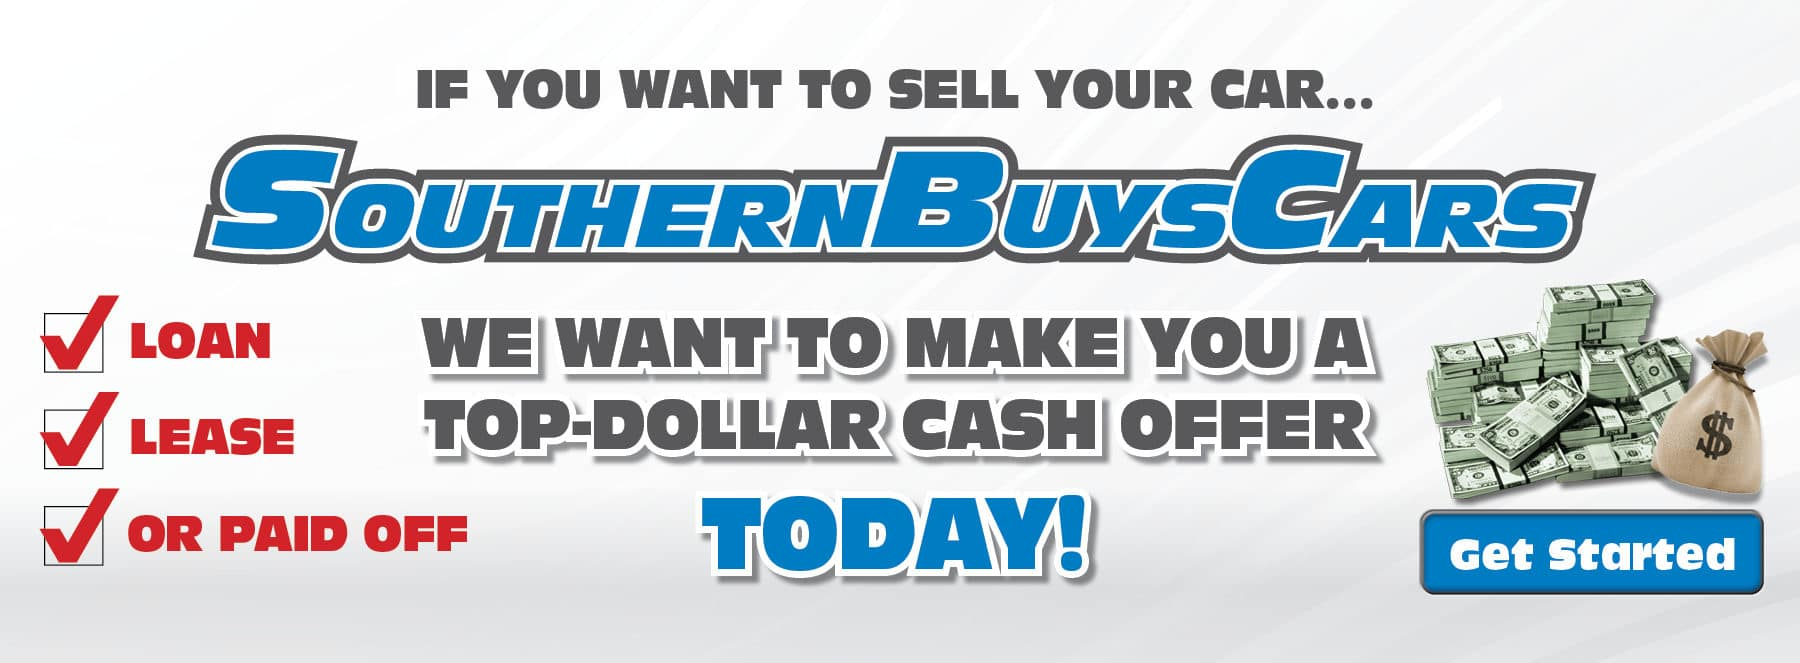 SOUMH-0062-G-1800 x 663-UPDATED SOUTHERN BUYS CARS BANNER-BE